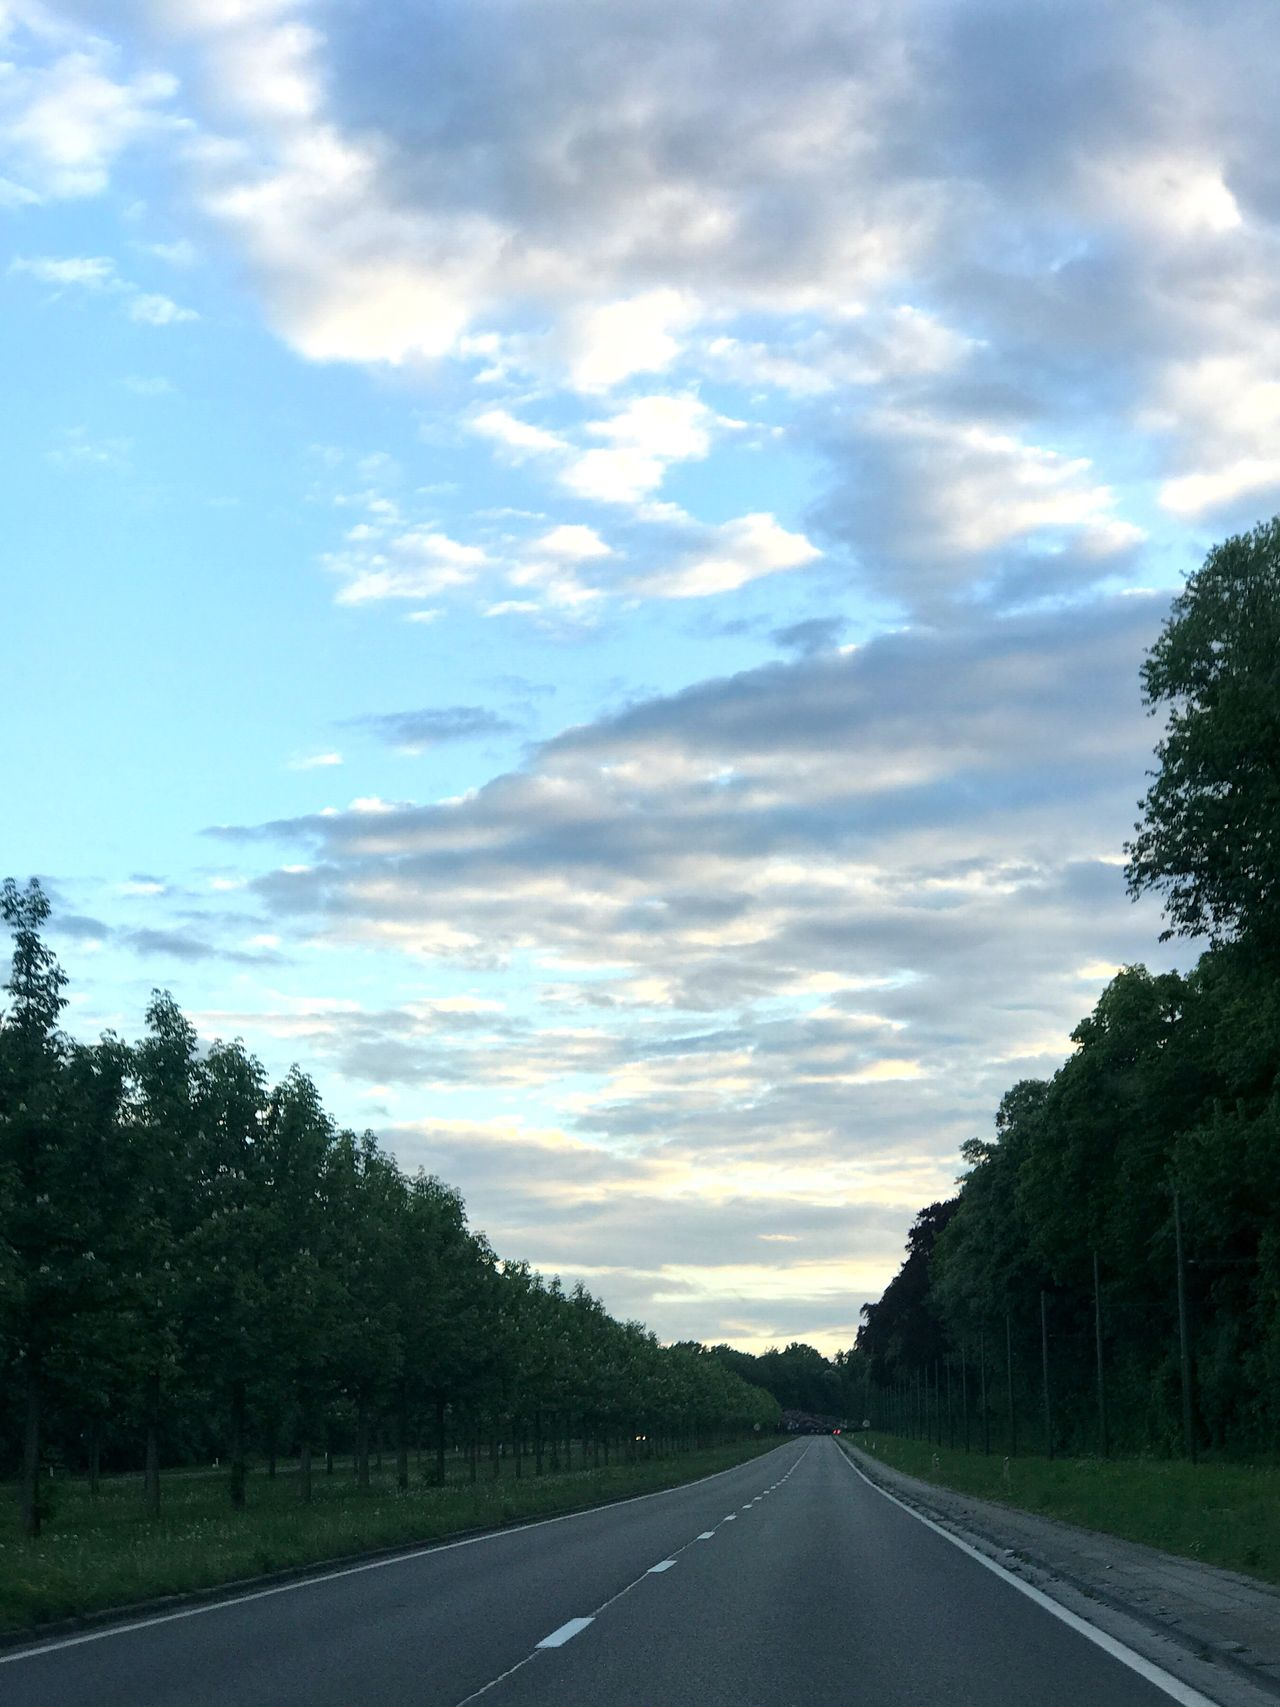 Road Cloud - Sky Sky The Way Forward Tree Transportation Nature No People Tranquility Scenics Tranquil Scene Day Outdoors Landscape Beauty In Nature